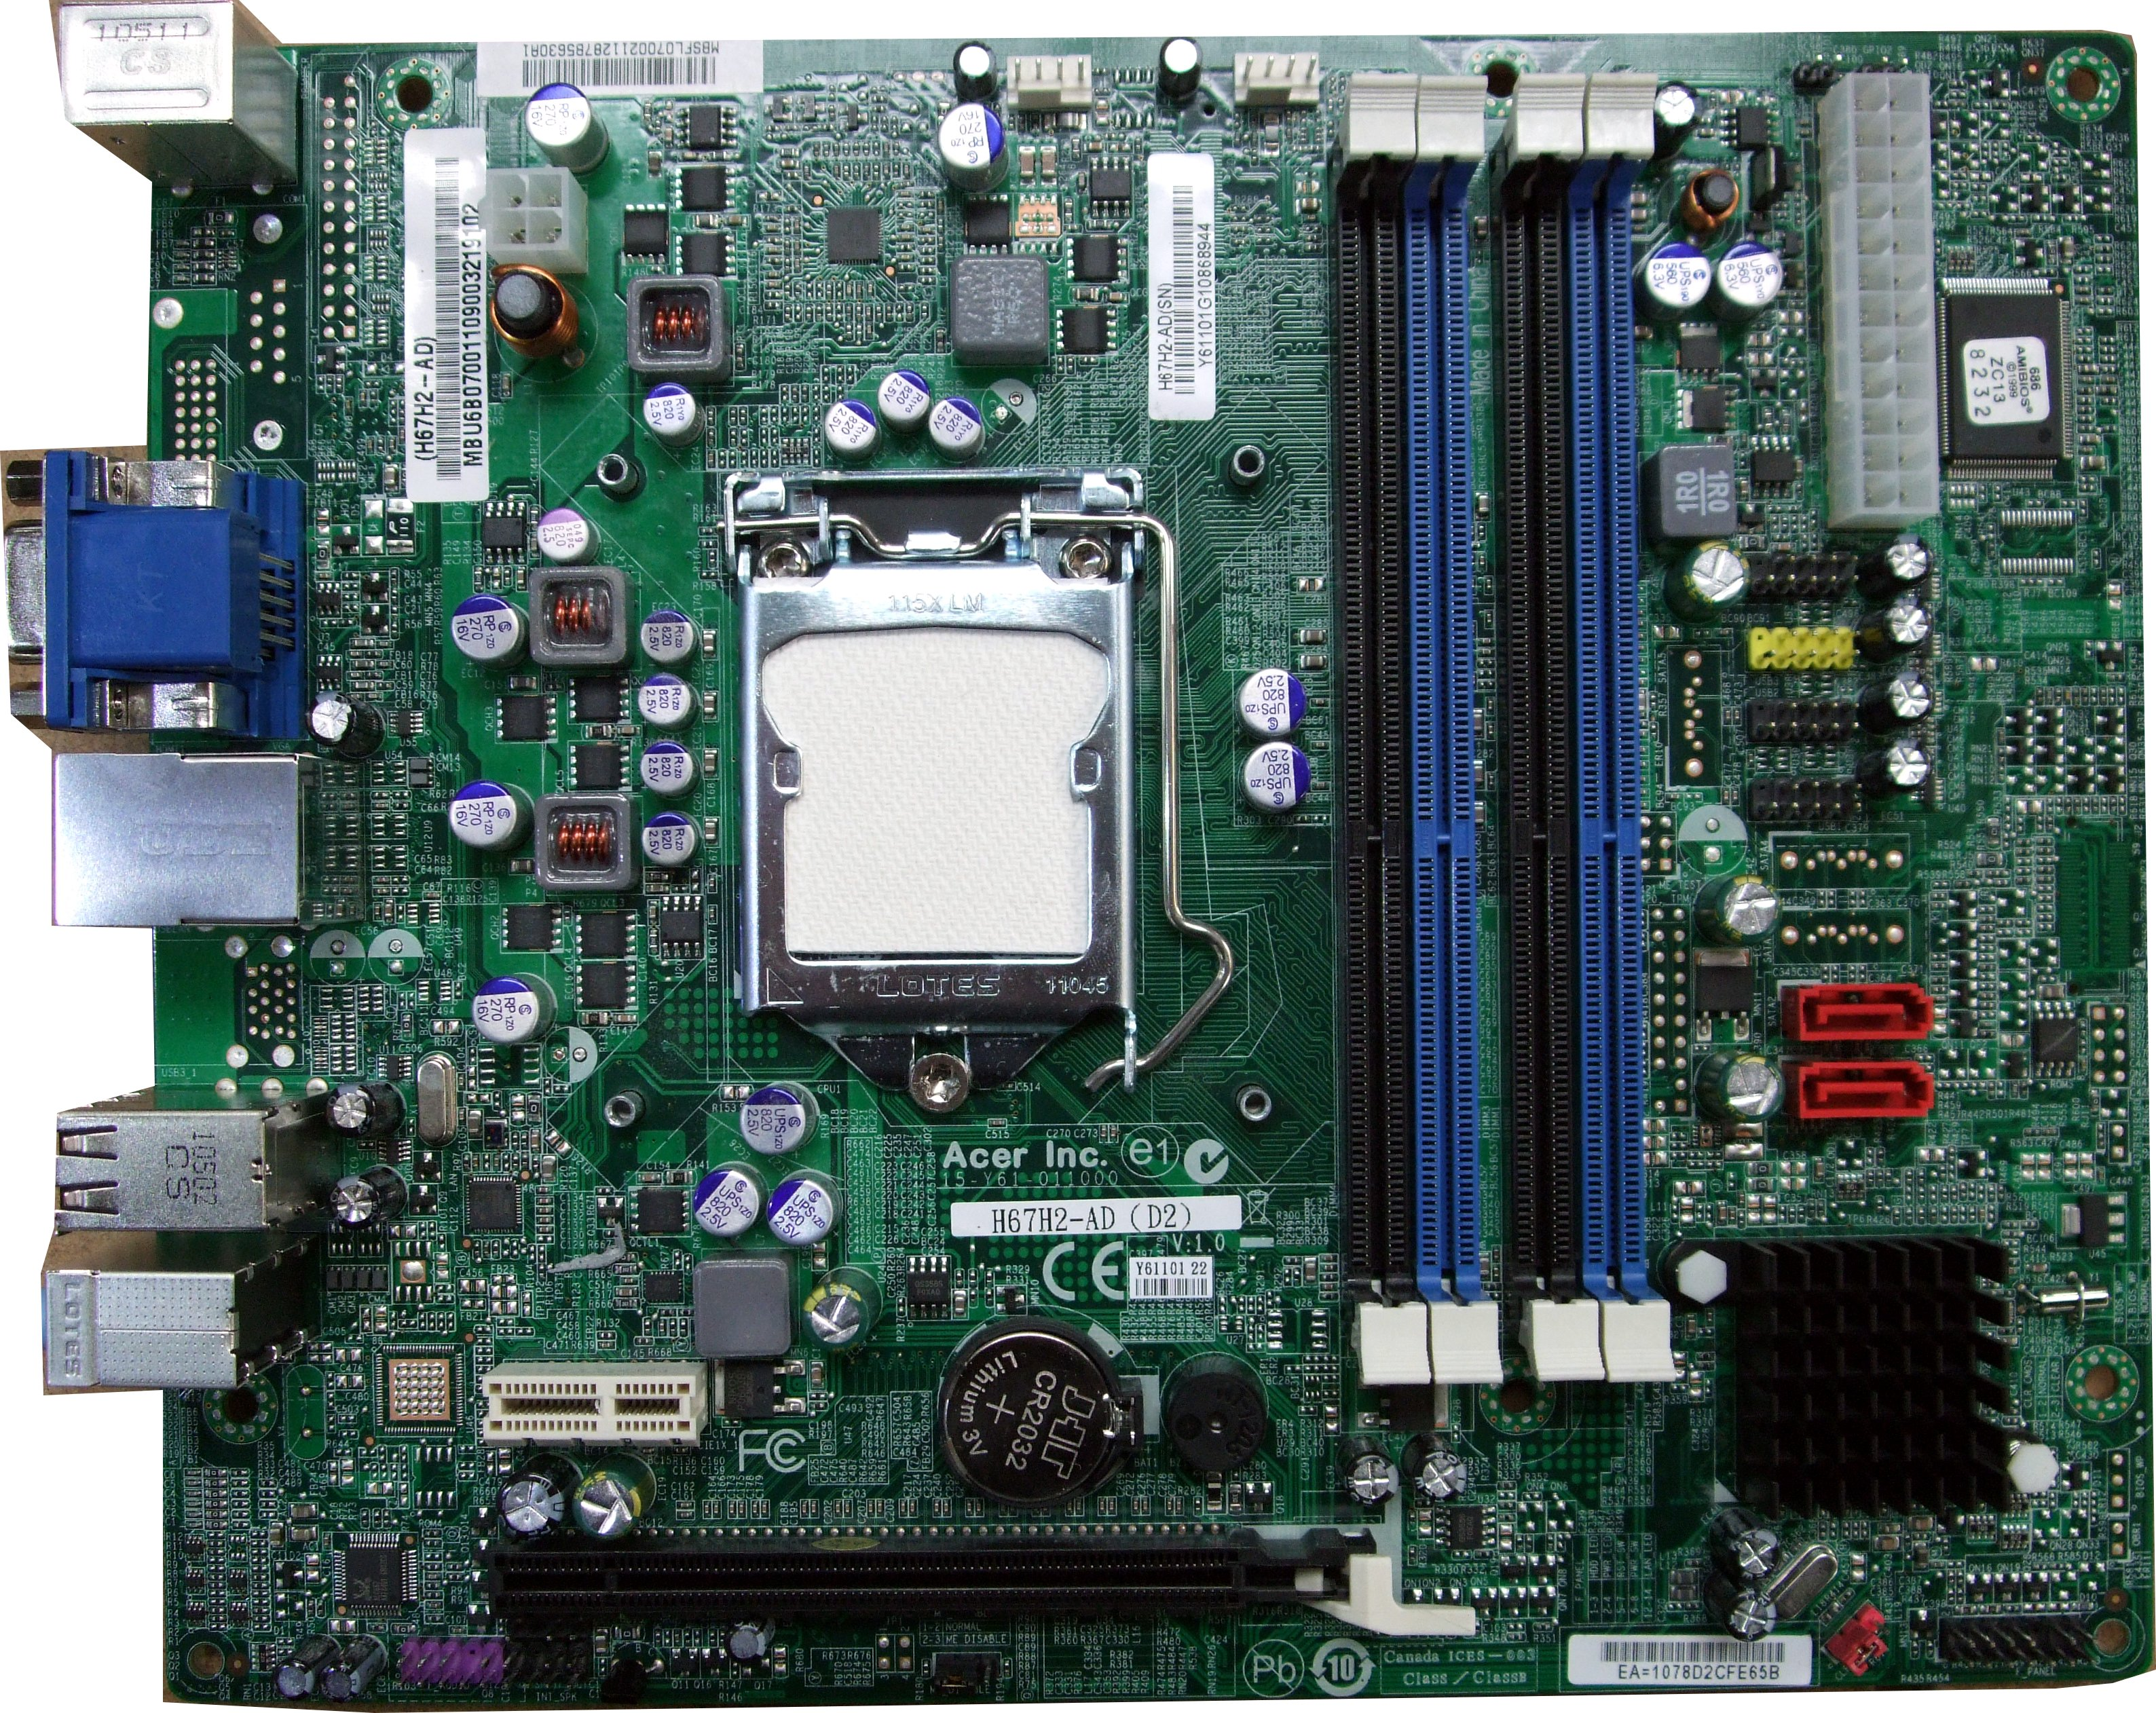 H67H2-AD Packard Bell oneTwo Motherboard L5861 L17526uk Z5761 1155  MB SFM07 001